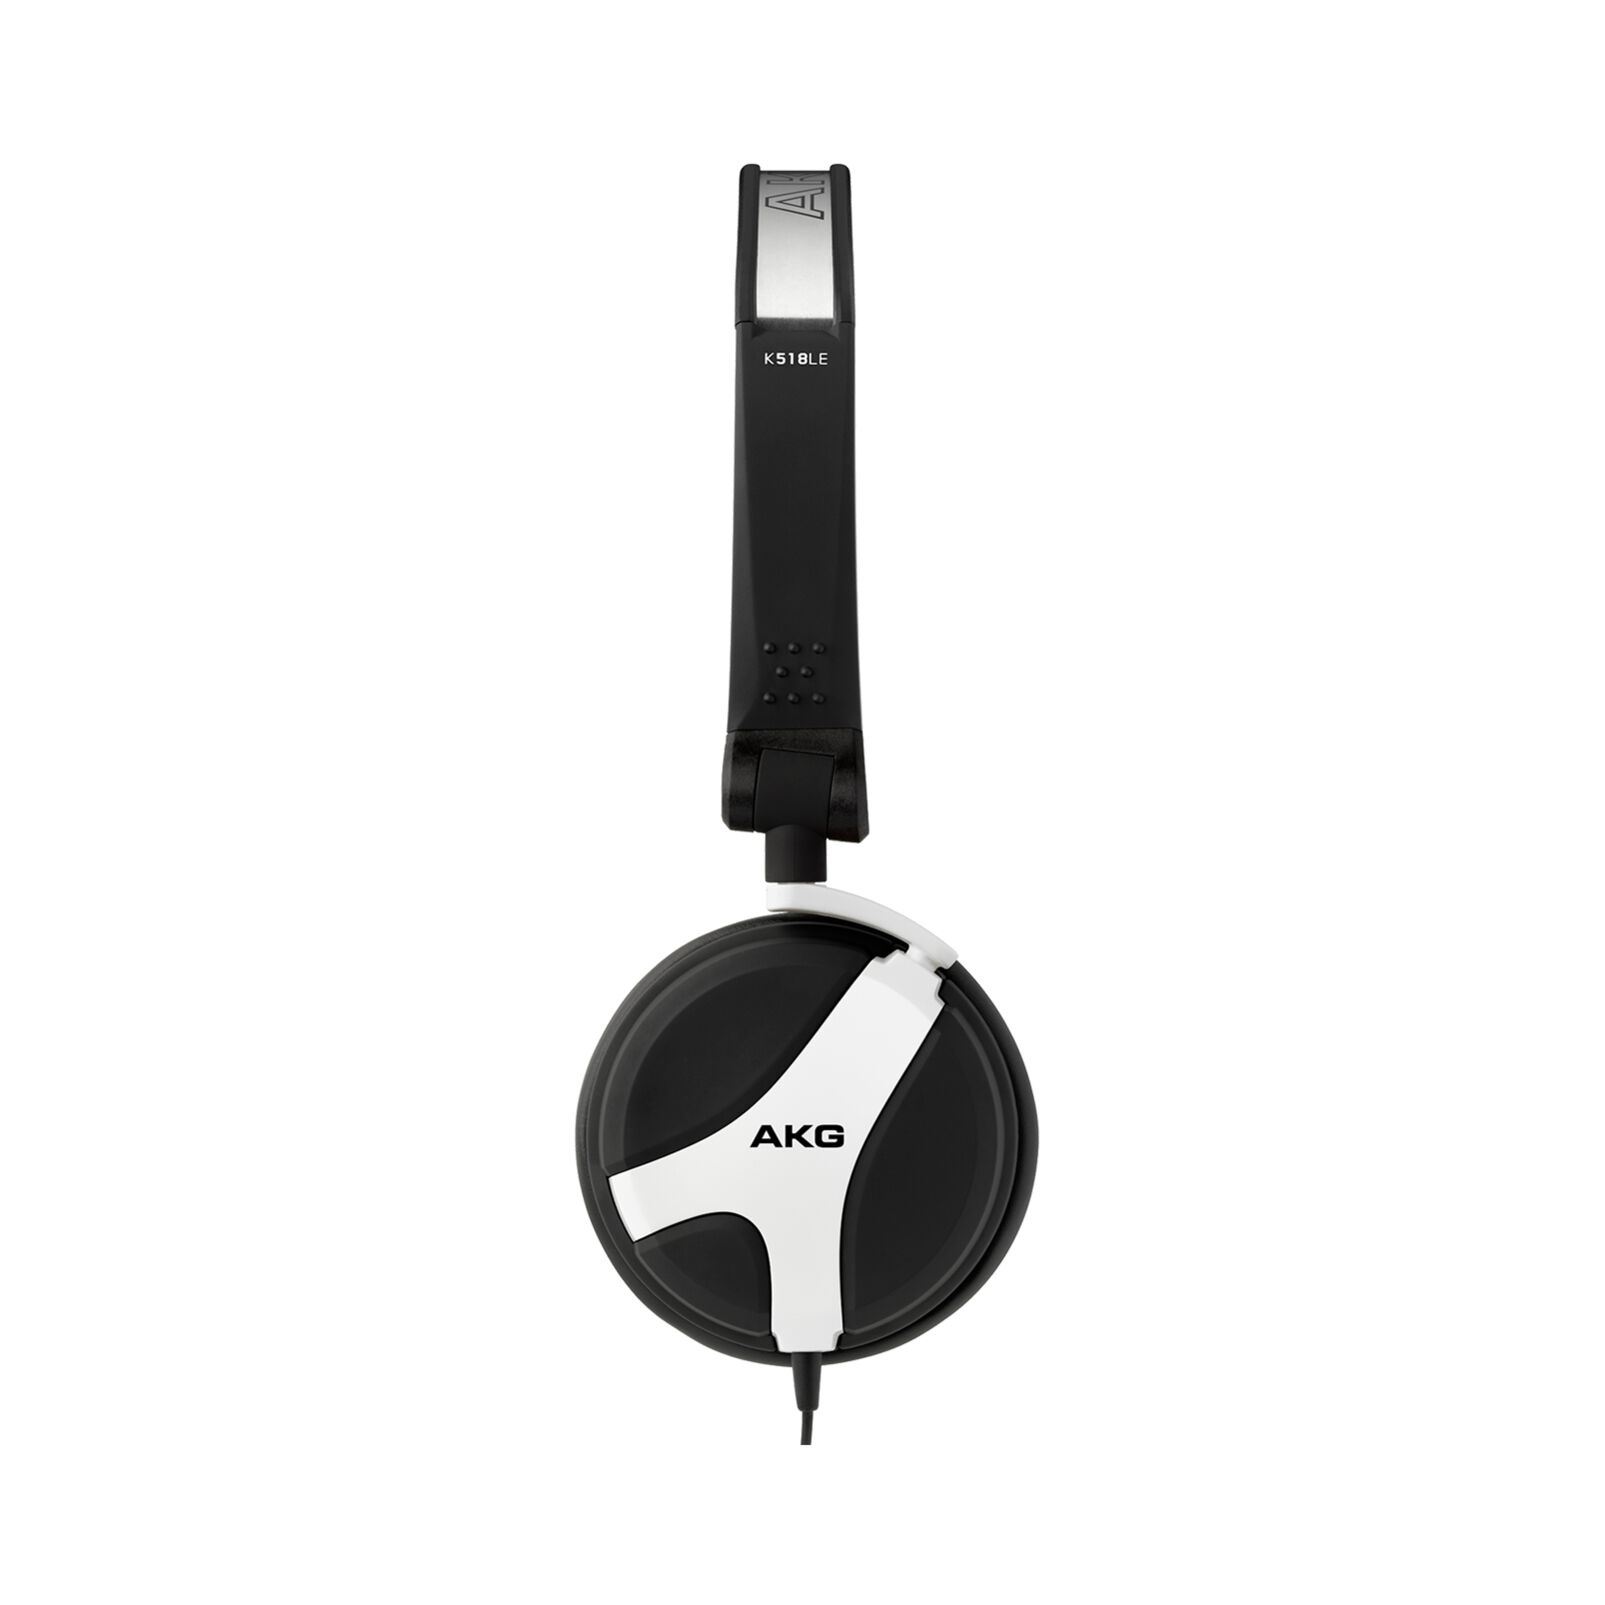 Image of AKG Harman K 518 DJ WHT DJ Headset mono On Ear Zwenkbare oorschelpen Rubberzwart